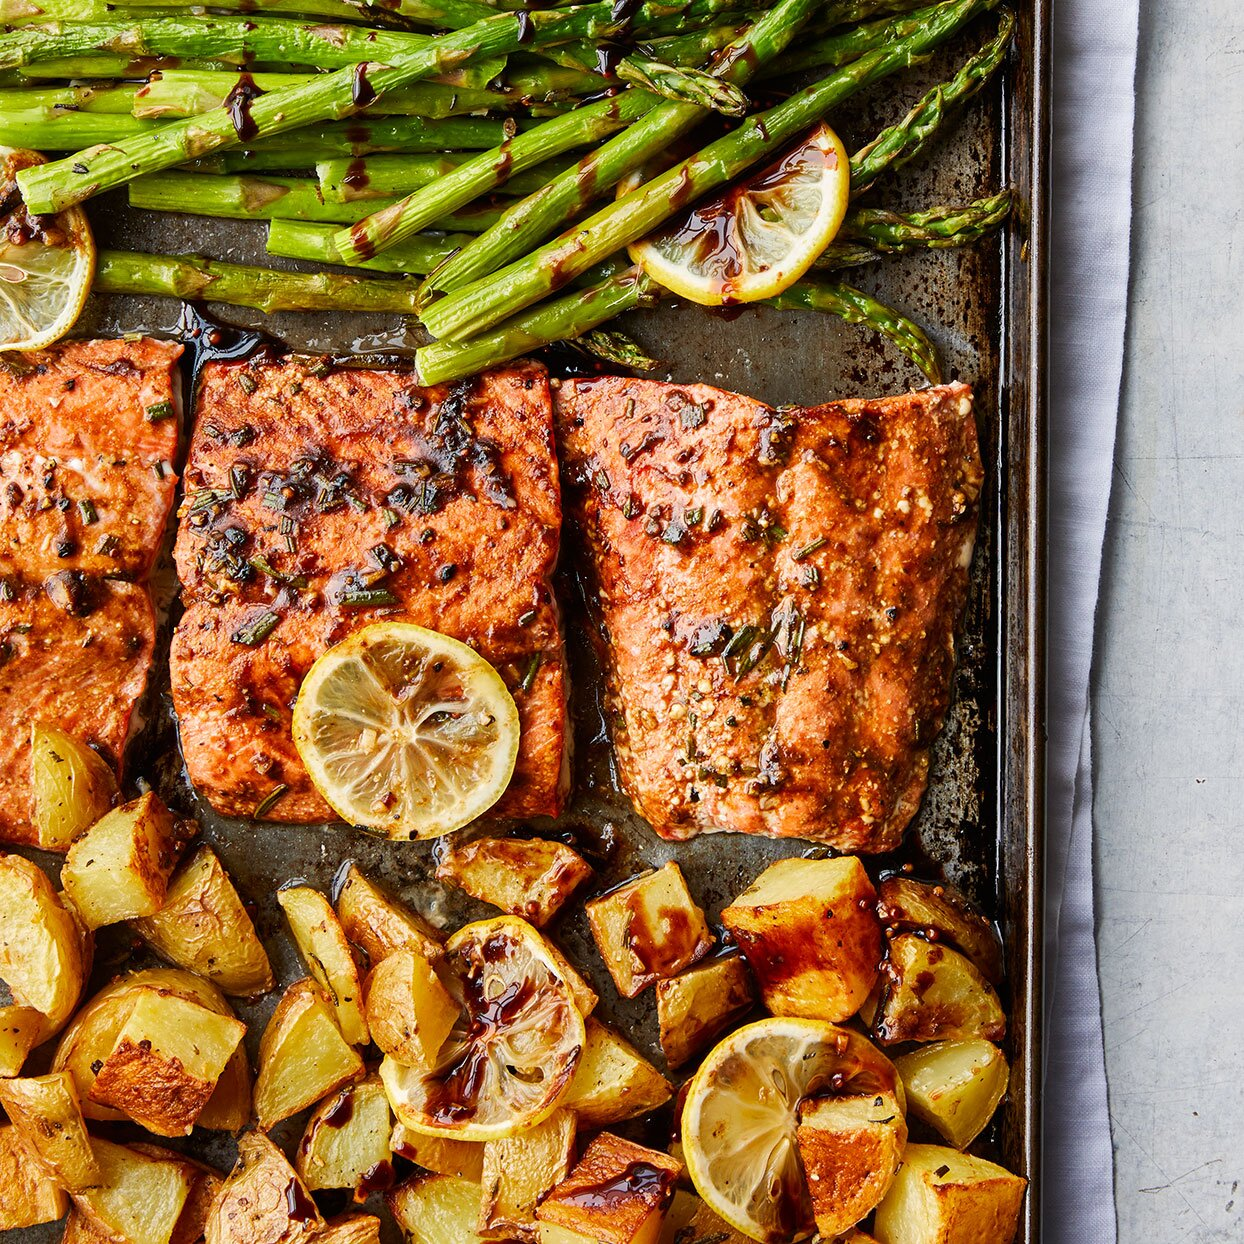 Sheet pan of the Rosemary Roasted Salmon with Asparagus & Potatoes recipe